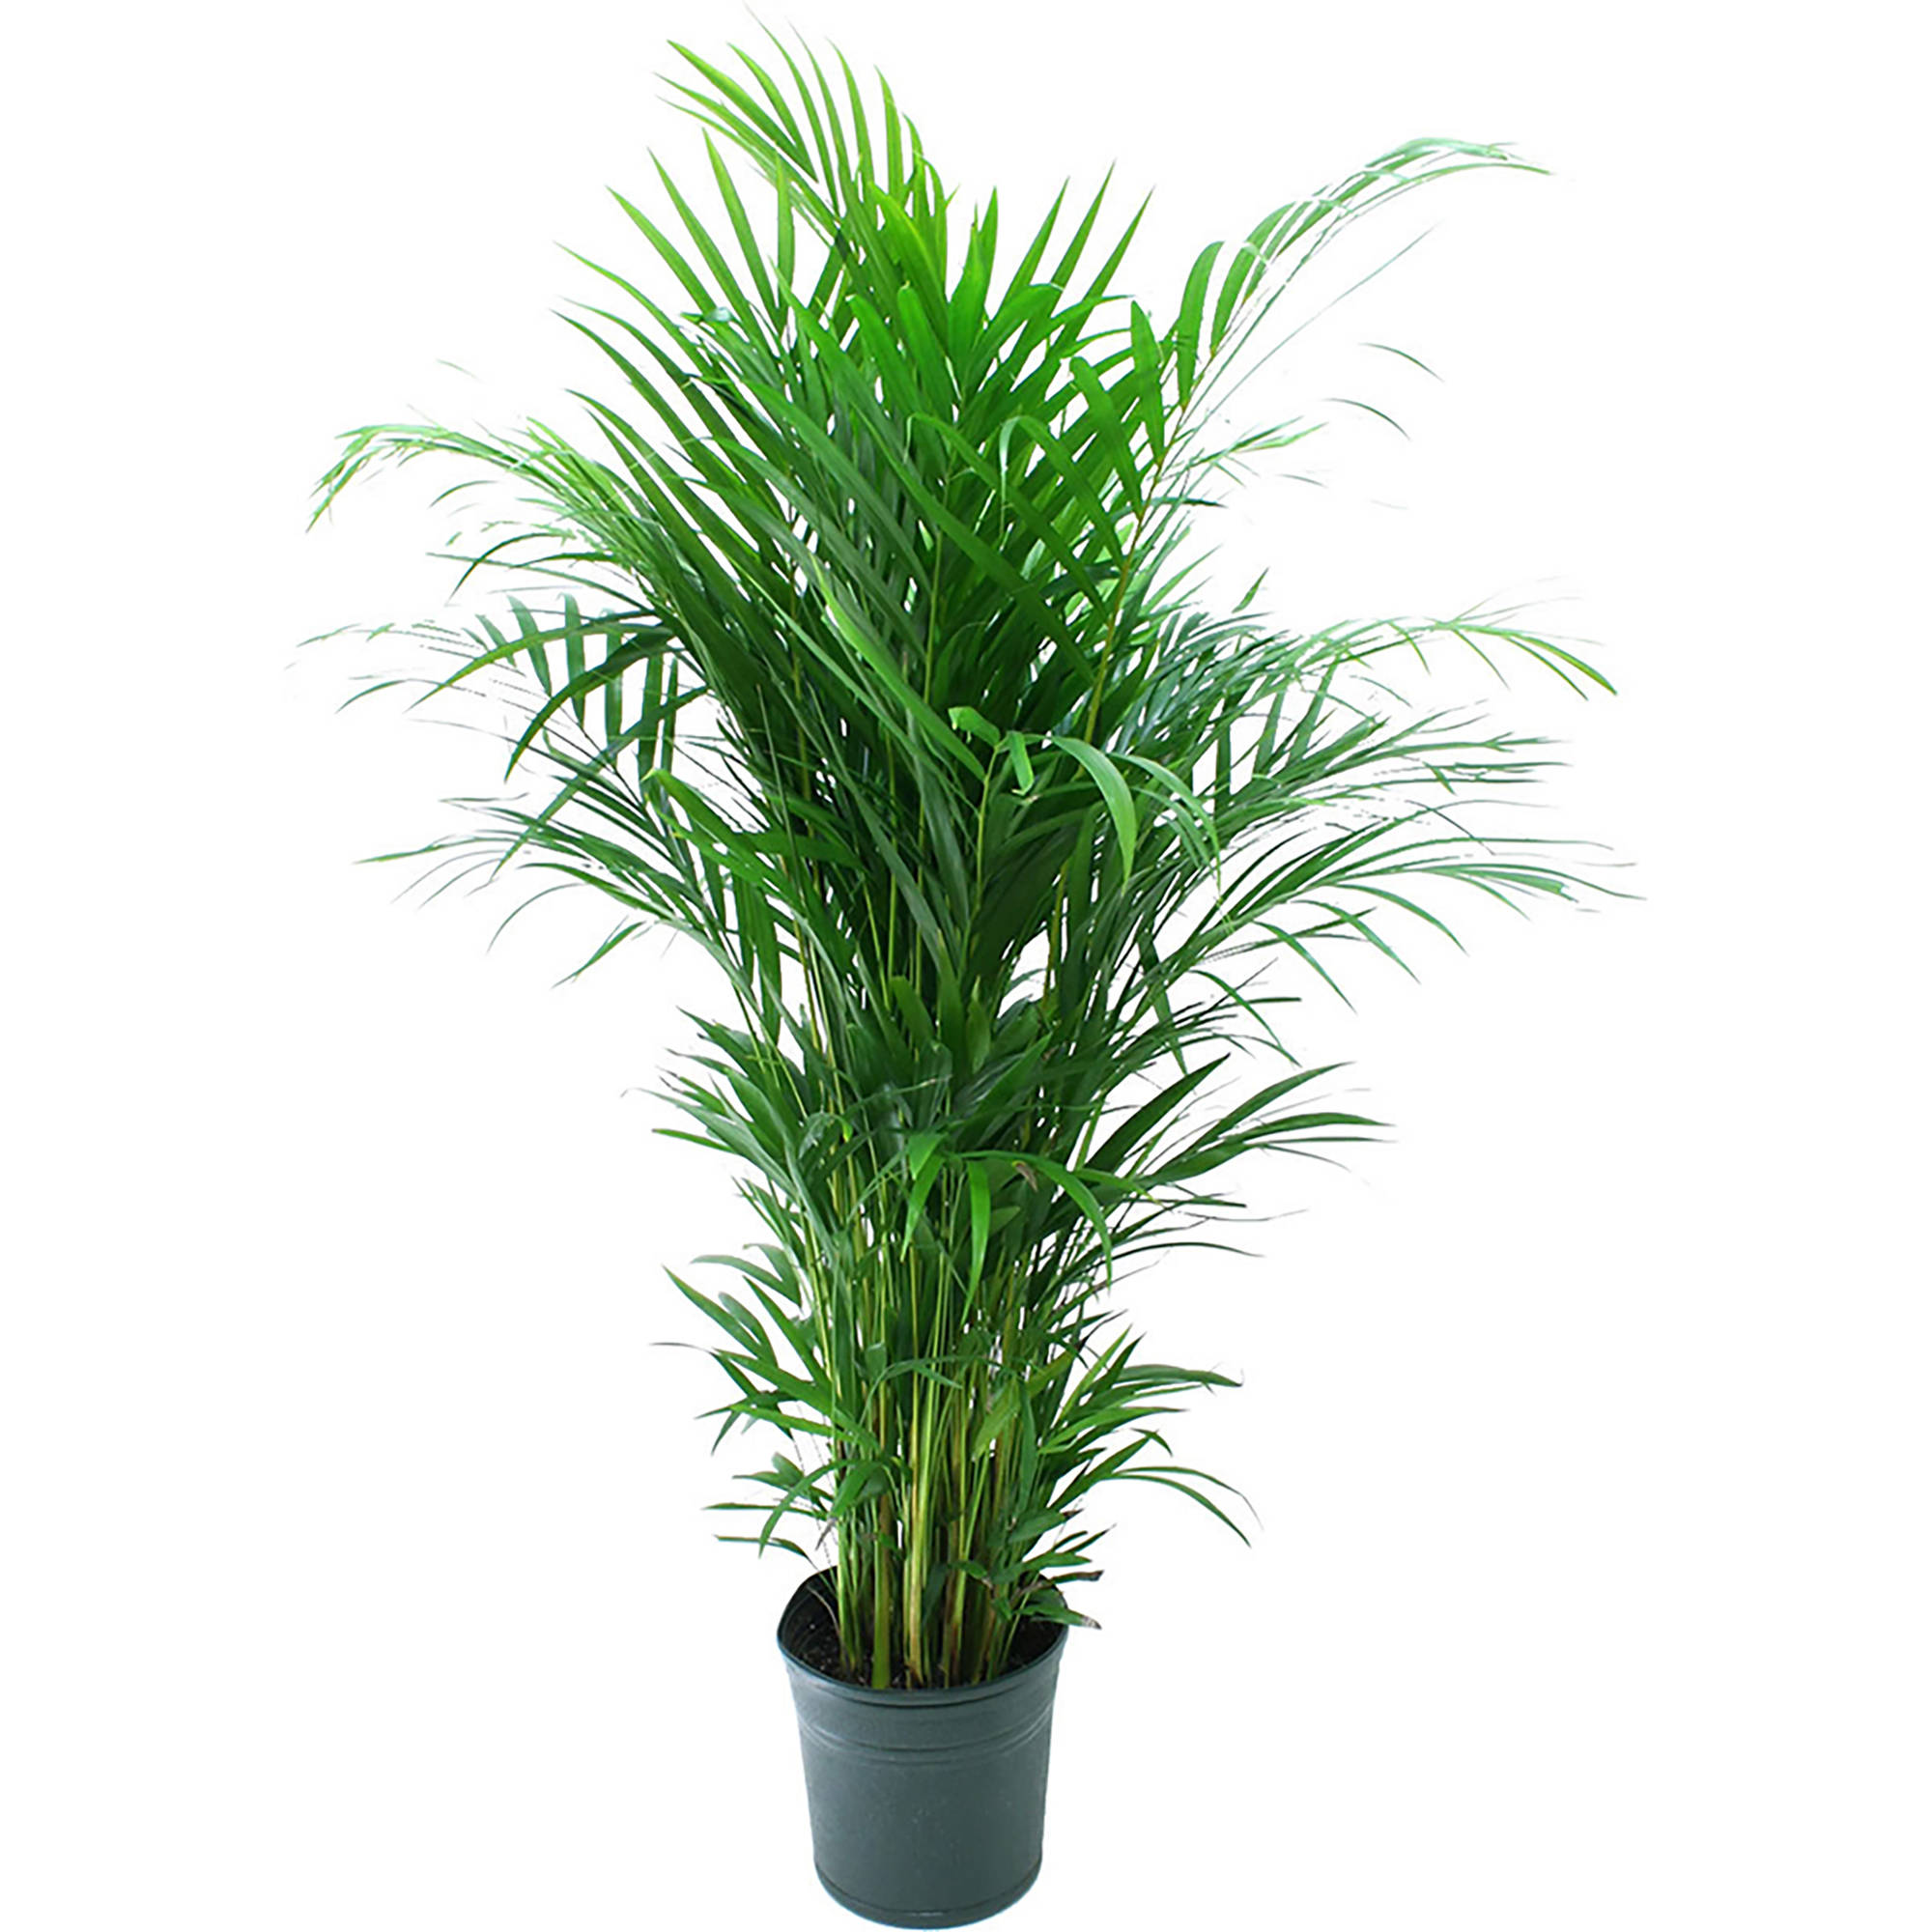 Artificial Chrysalidocarpus Lutescens Delray Plants Areca Palm Dypsis Lutescens Easy To Grow Live House Plant 10 Inch Grower Pot